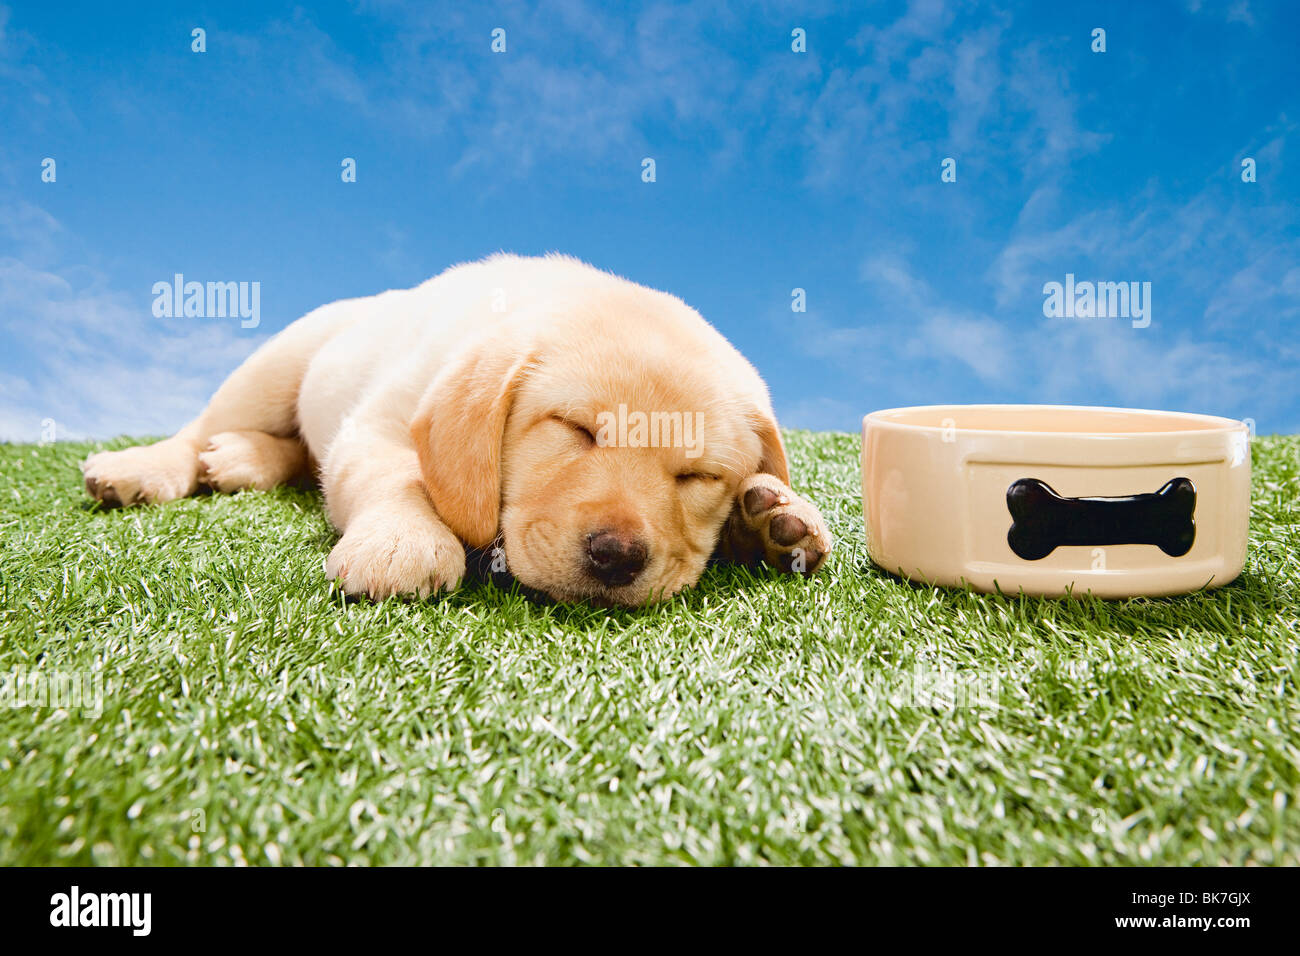 Labrador puppy sleeping by dog bowl - Stock Image